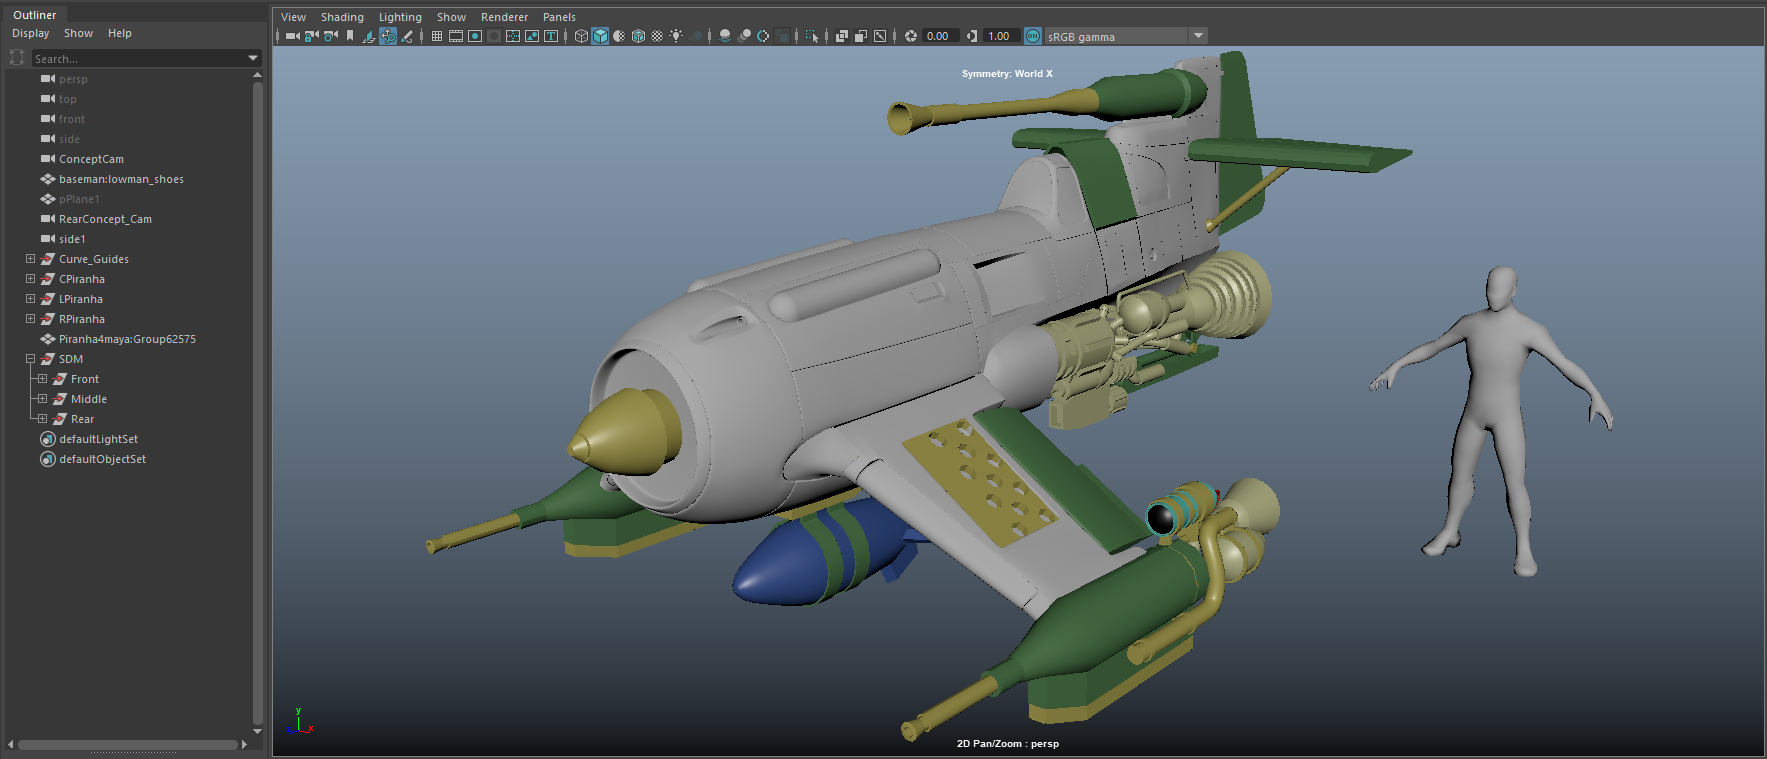 Building a Piranha War Fighter with Andrew Grant